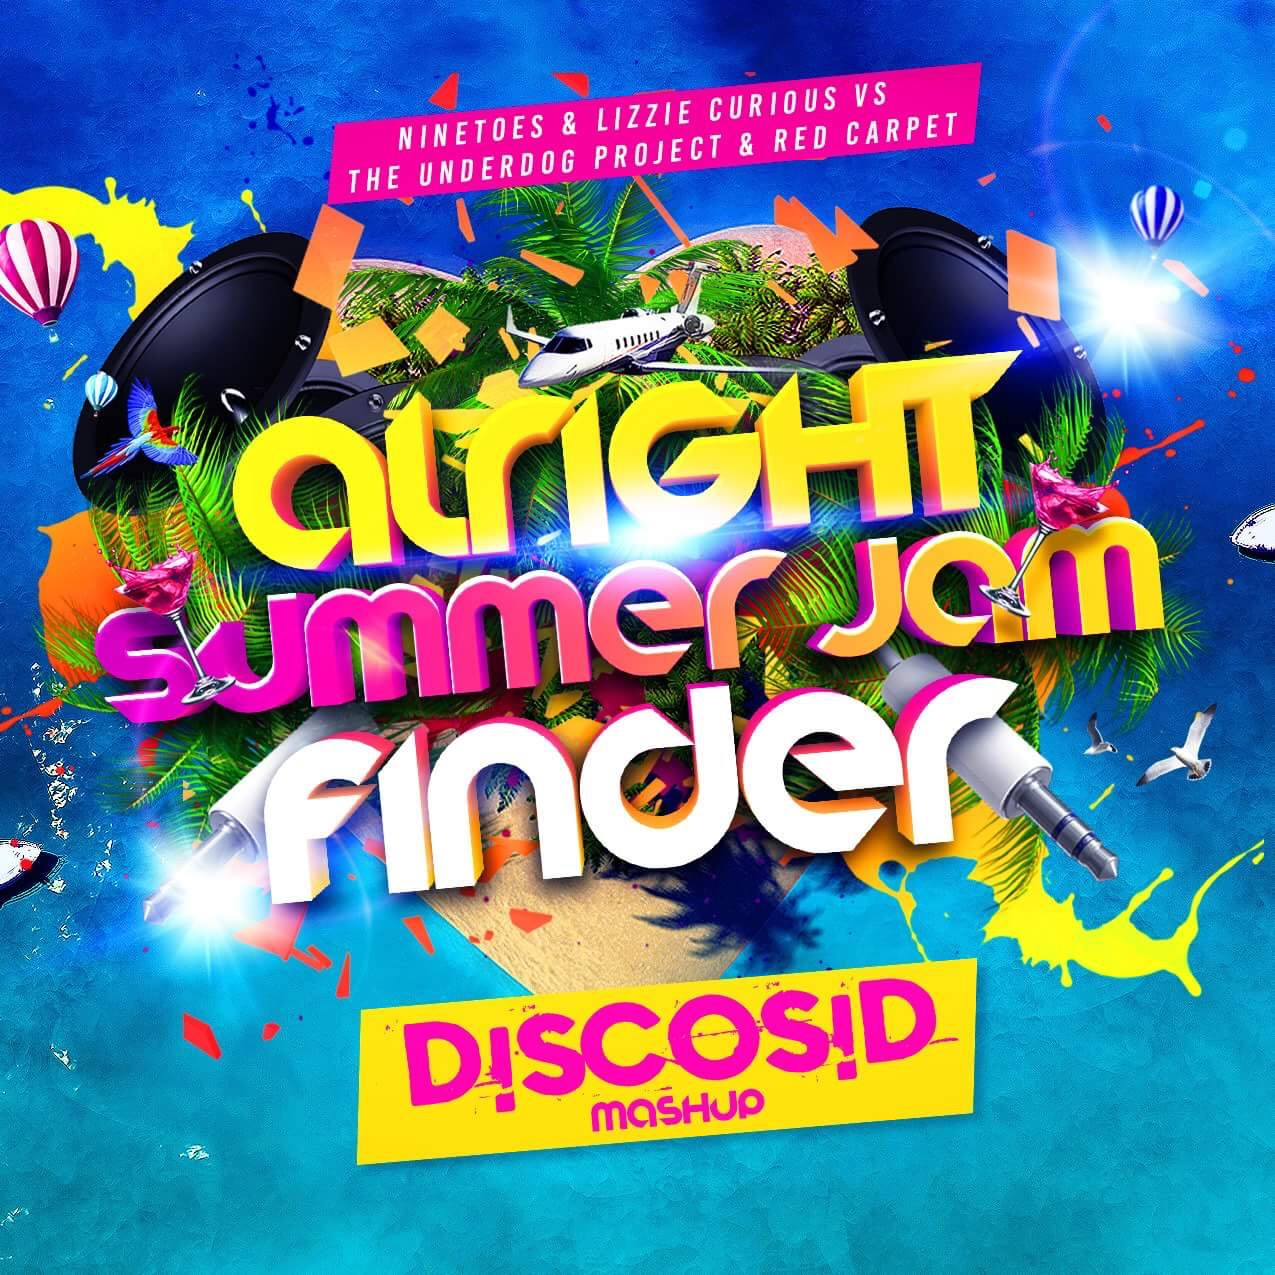 Ninetoes & Lizzie Curious Vs The Underdog Project & Red Carpet - Alright Summer jam Finder (Discosid Mashup)